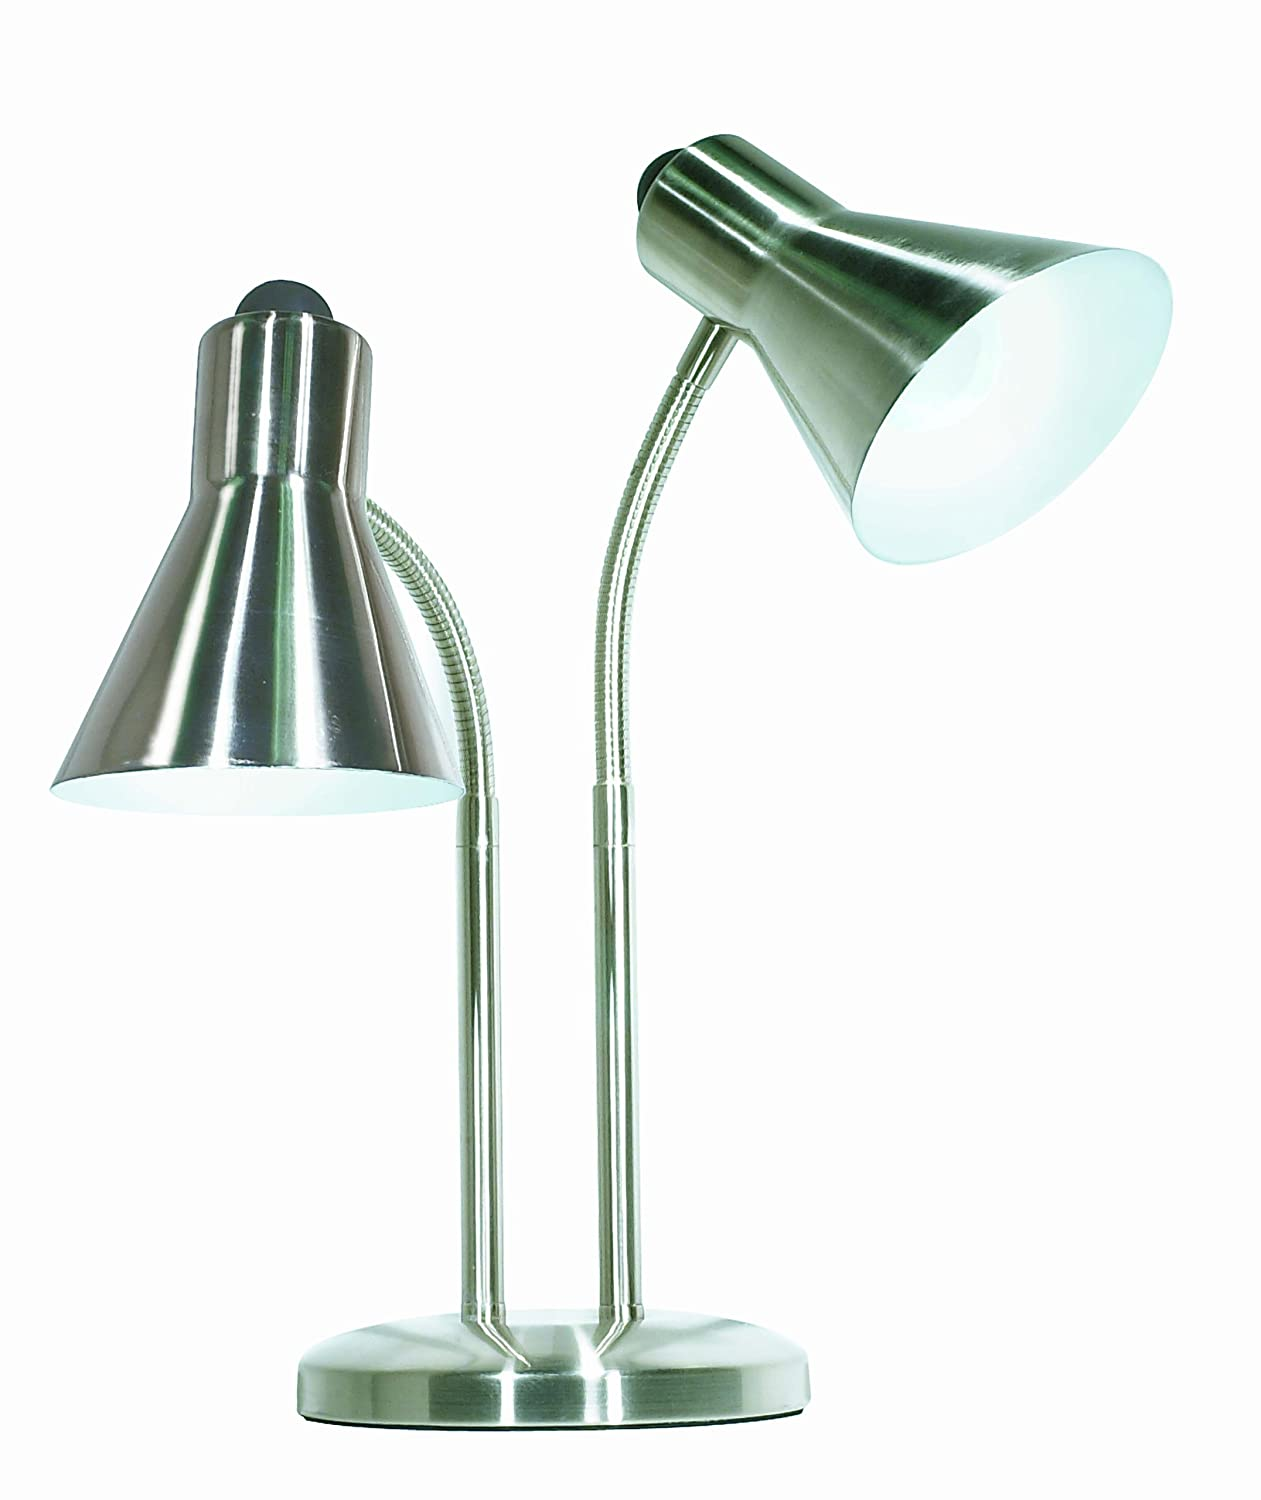 Amazon.com: Satco Products 60/806 Twin Goose Neck Desk Lamp, Brushed Nickel: Home Improvement